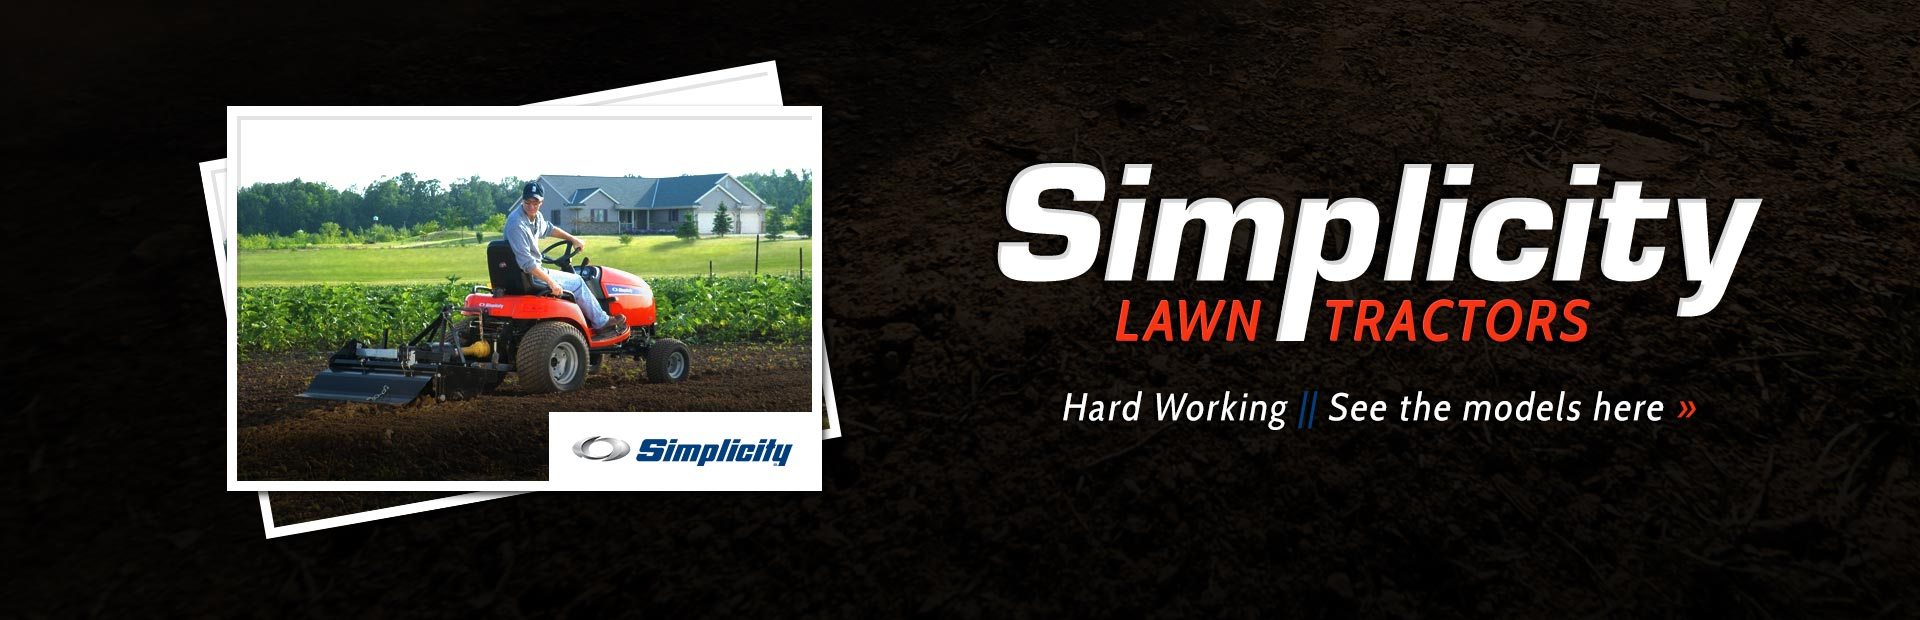 Simplicity Lawn Tractors: Click here to view the models!